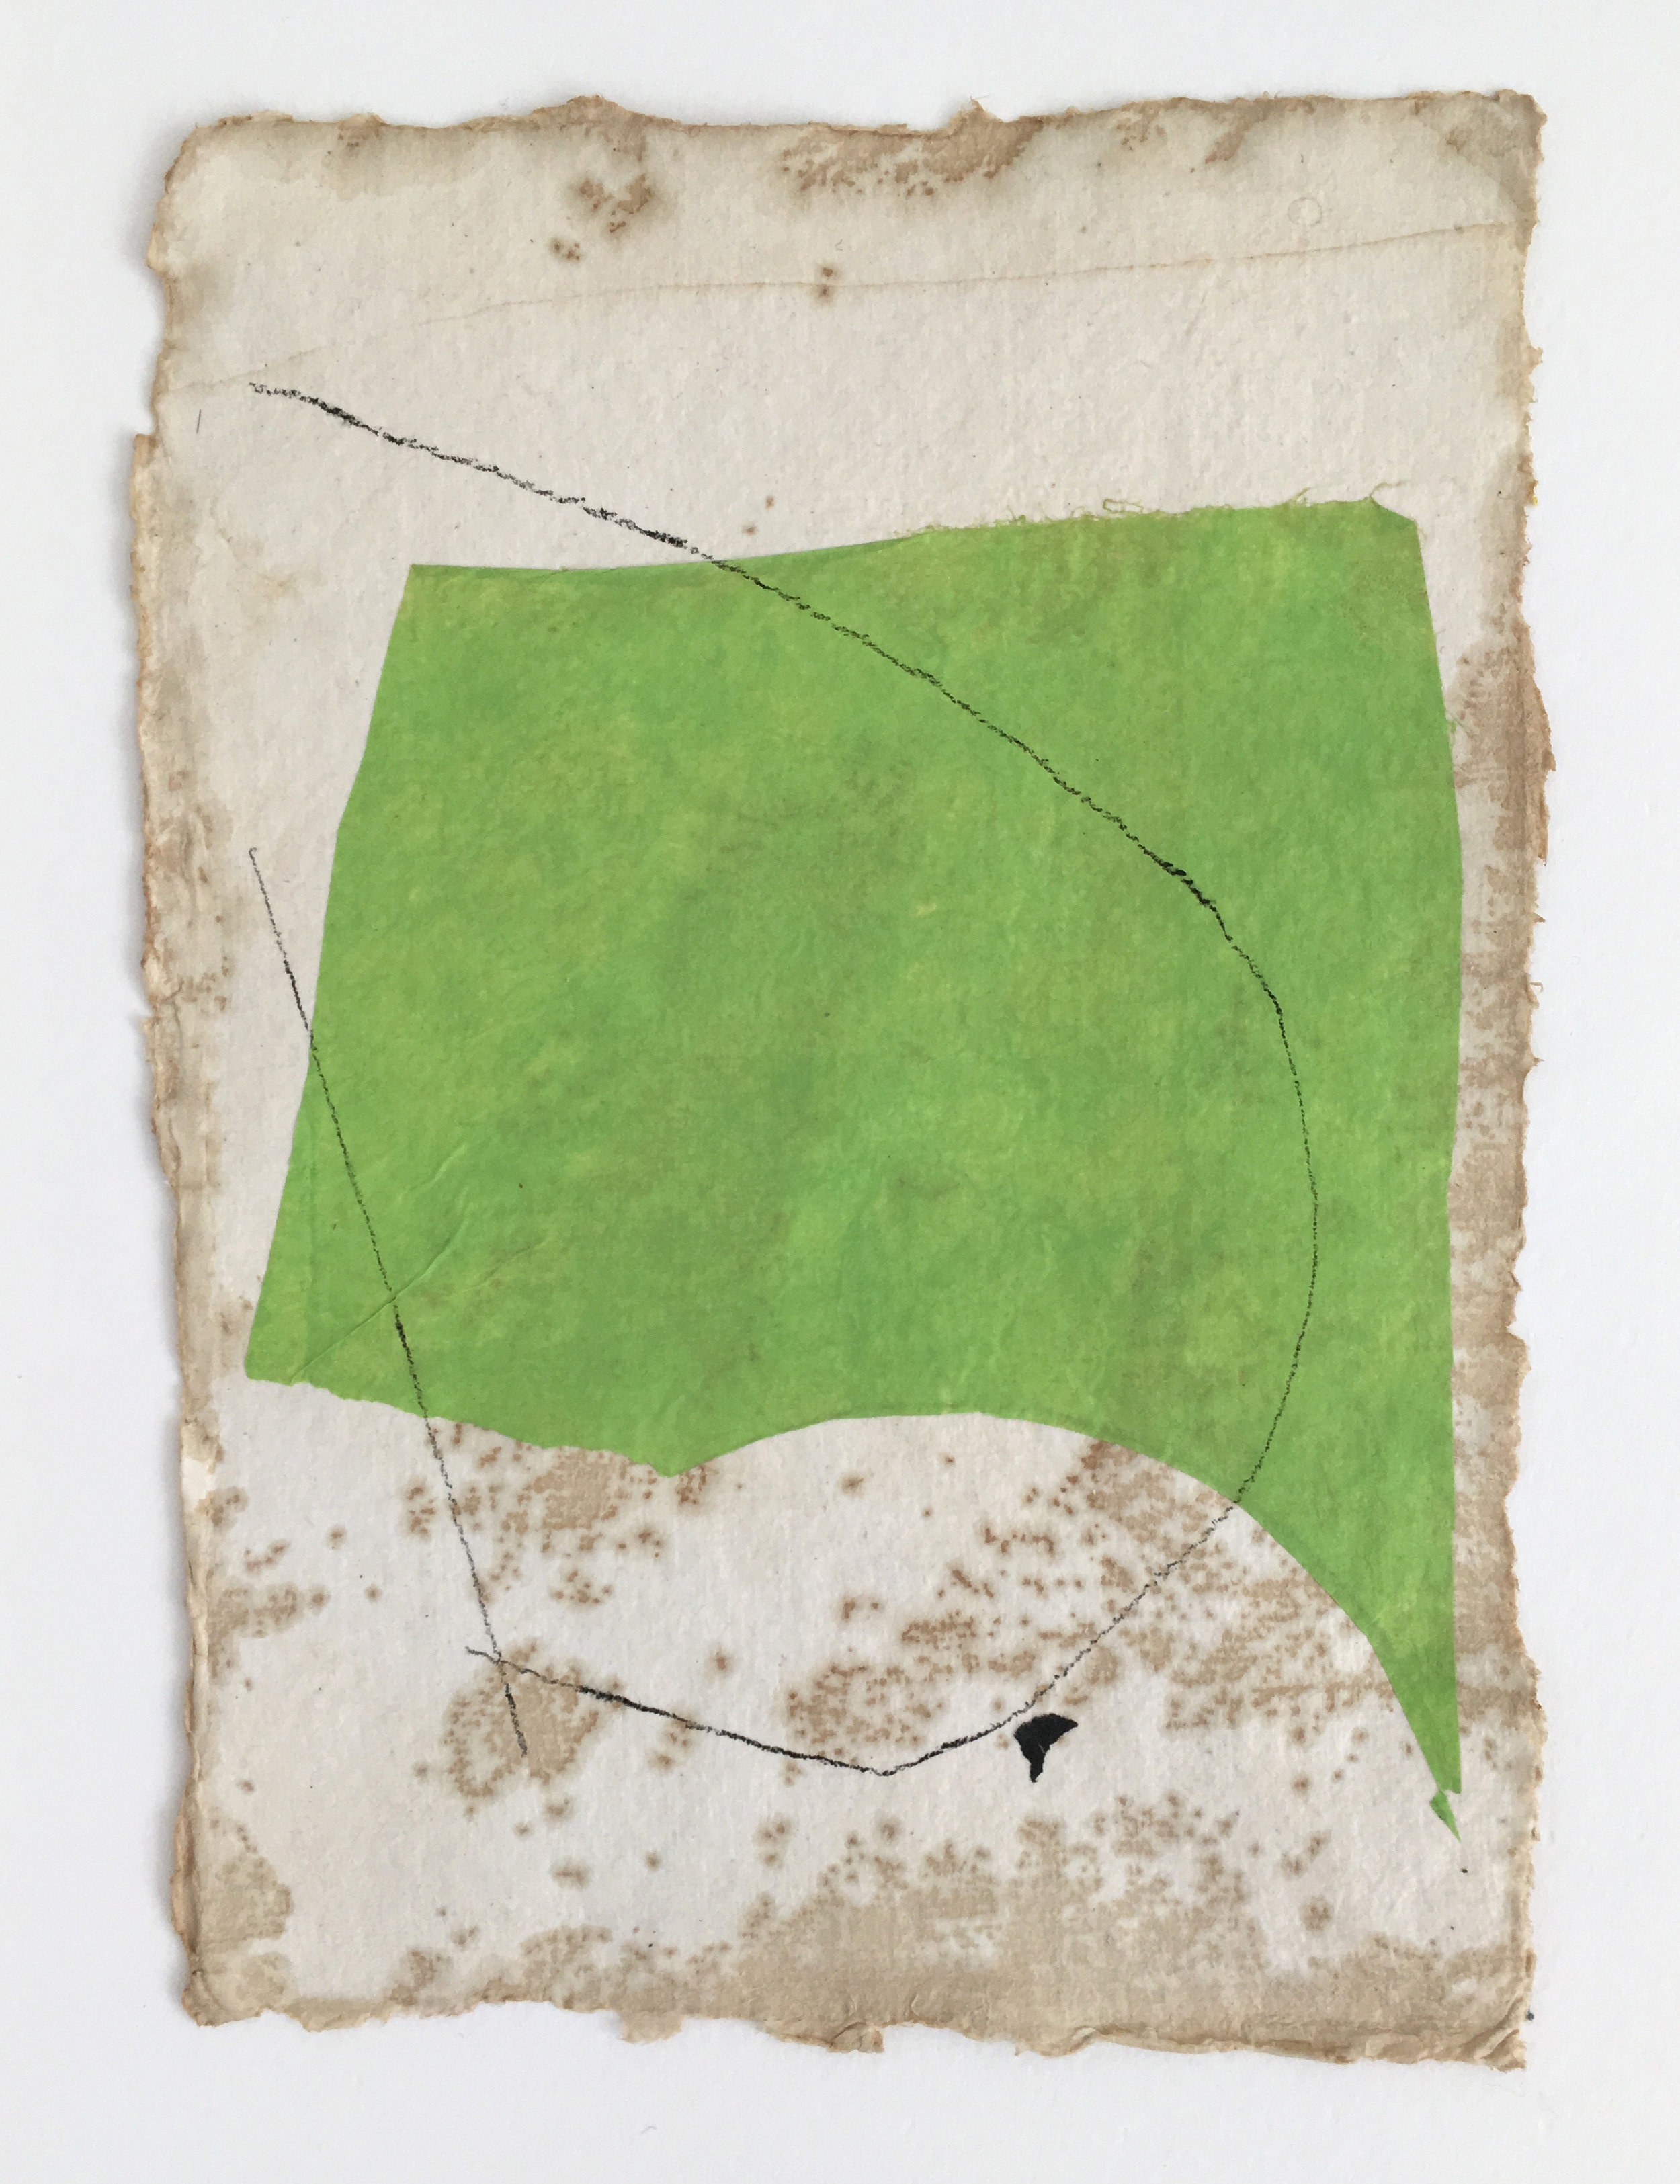 Pale Green on Tan with Black Lines and Speck, 2018, mixed media on coffee-dyed watercolor paper, 8.25 x 6.25 in, $250